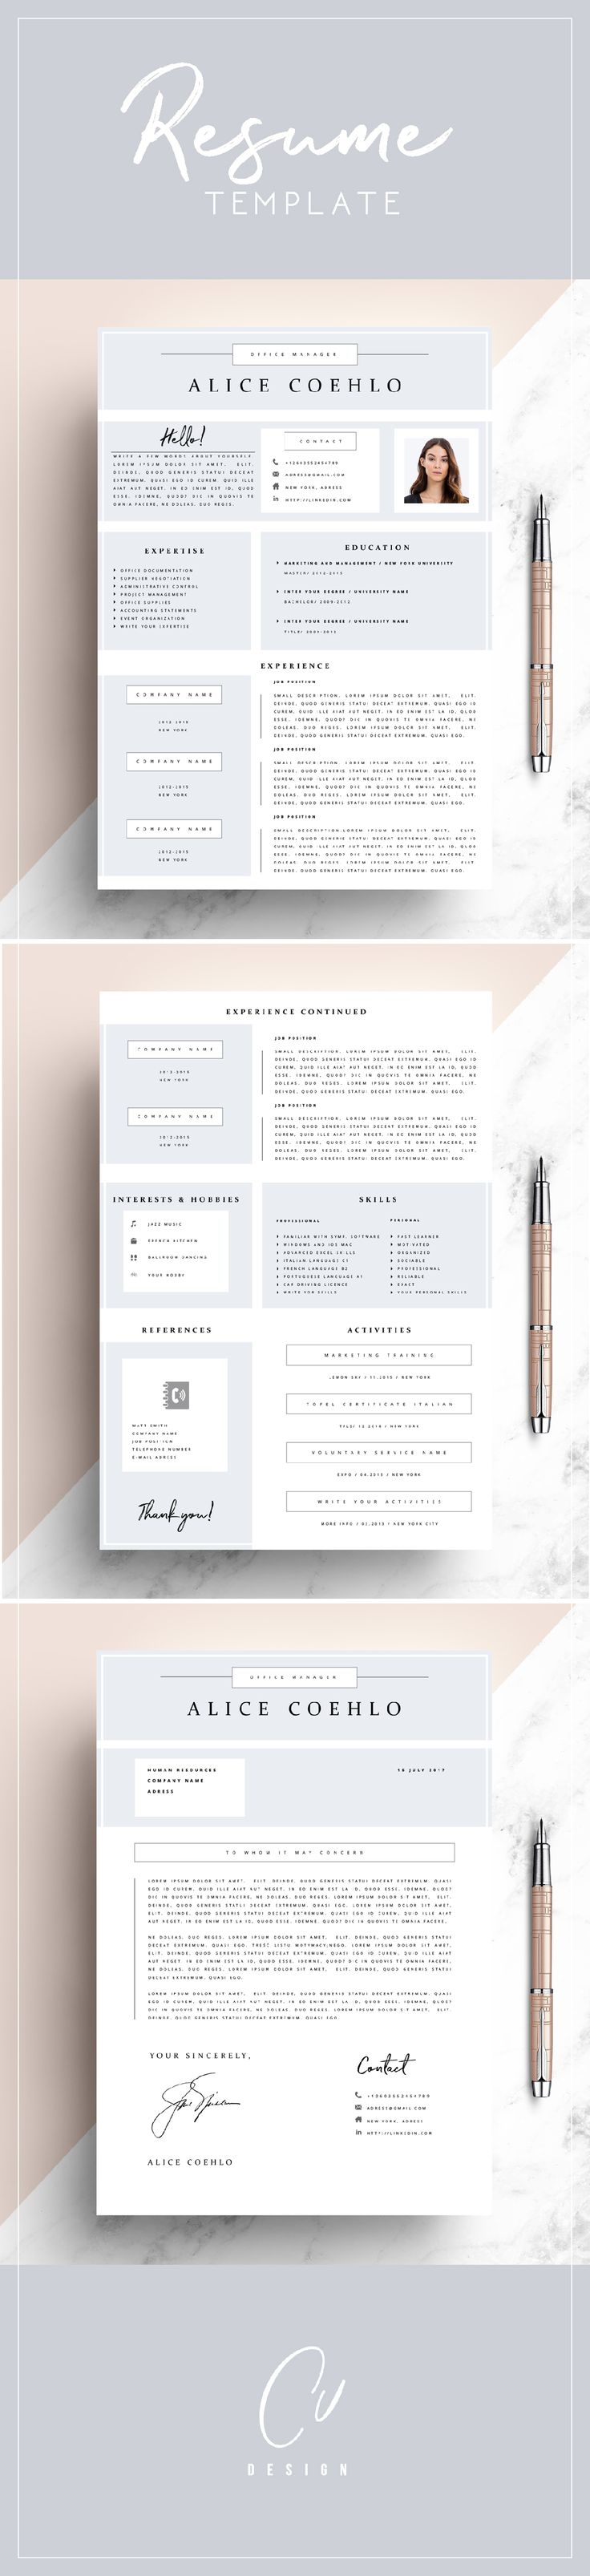 check out this amazing ms word editable resume template - Simple Professional Resume